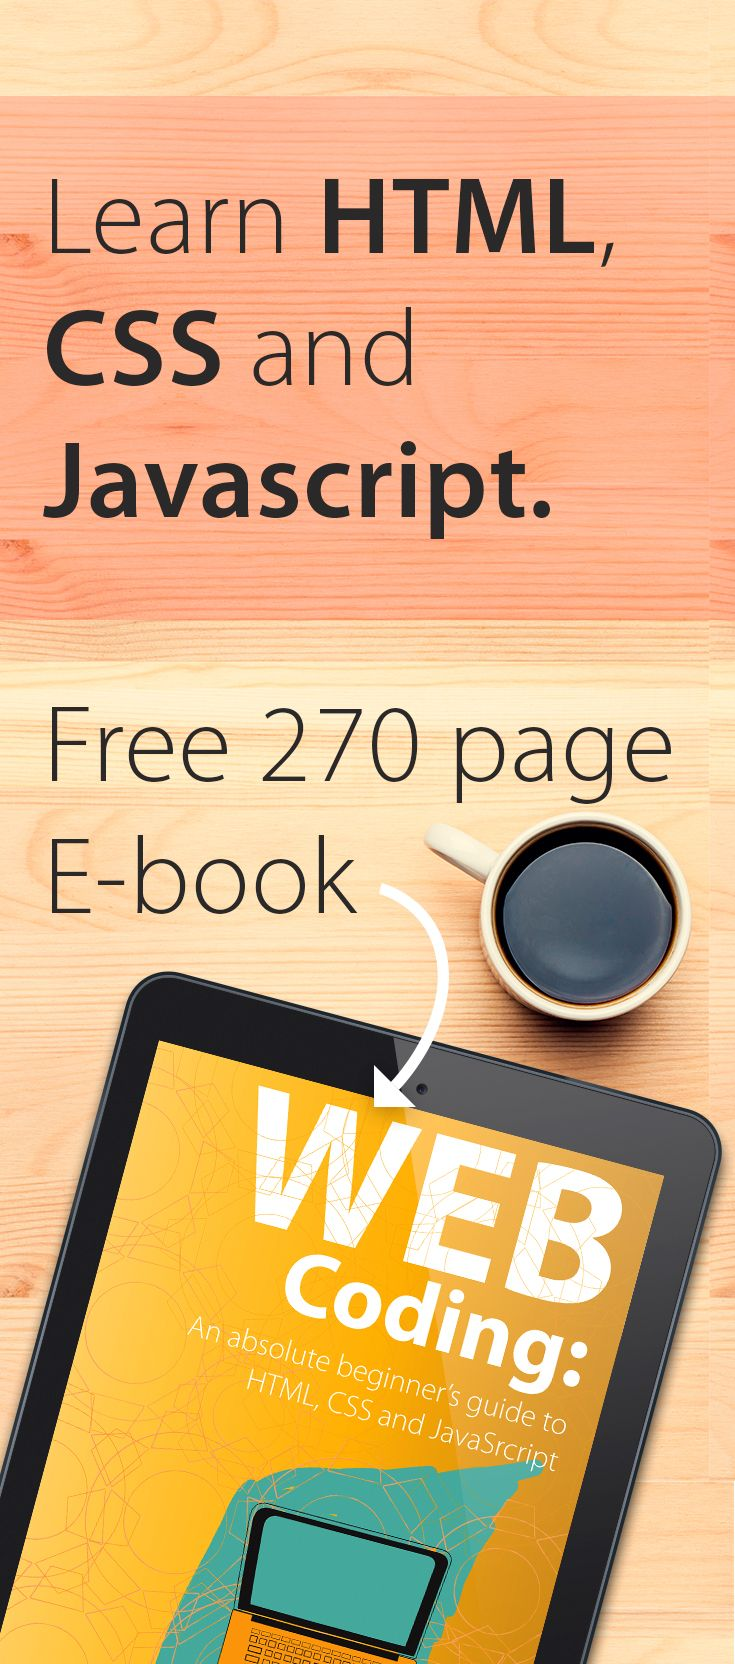 Learn HTML CSS and JavaScript. Learn Web Development. Create web pages.